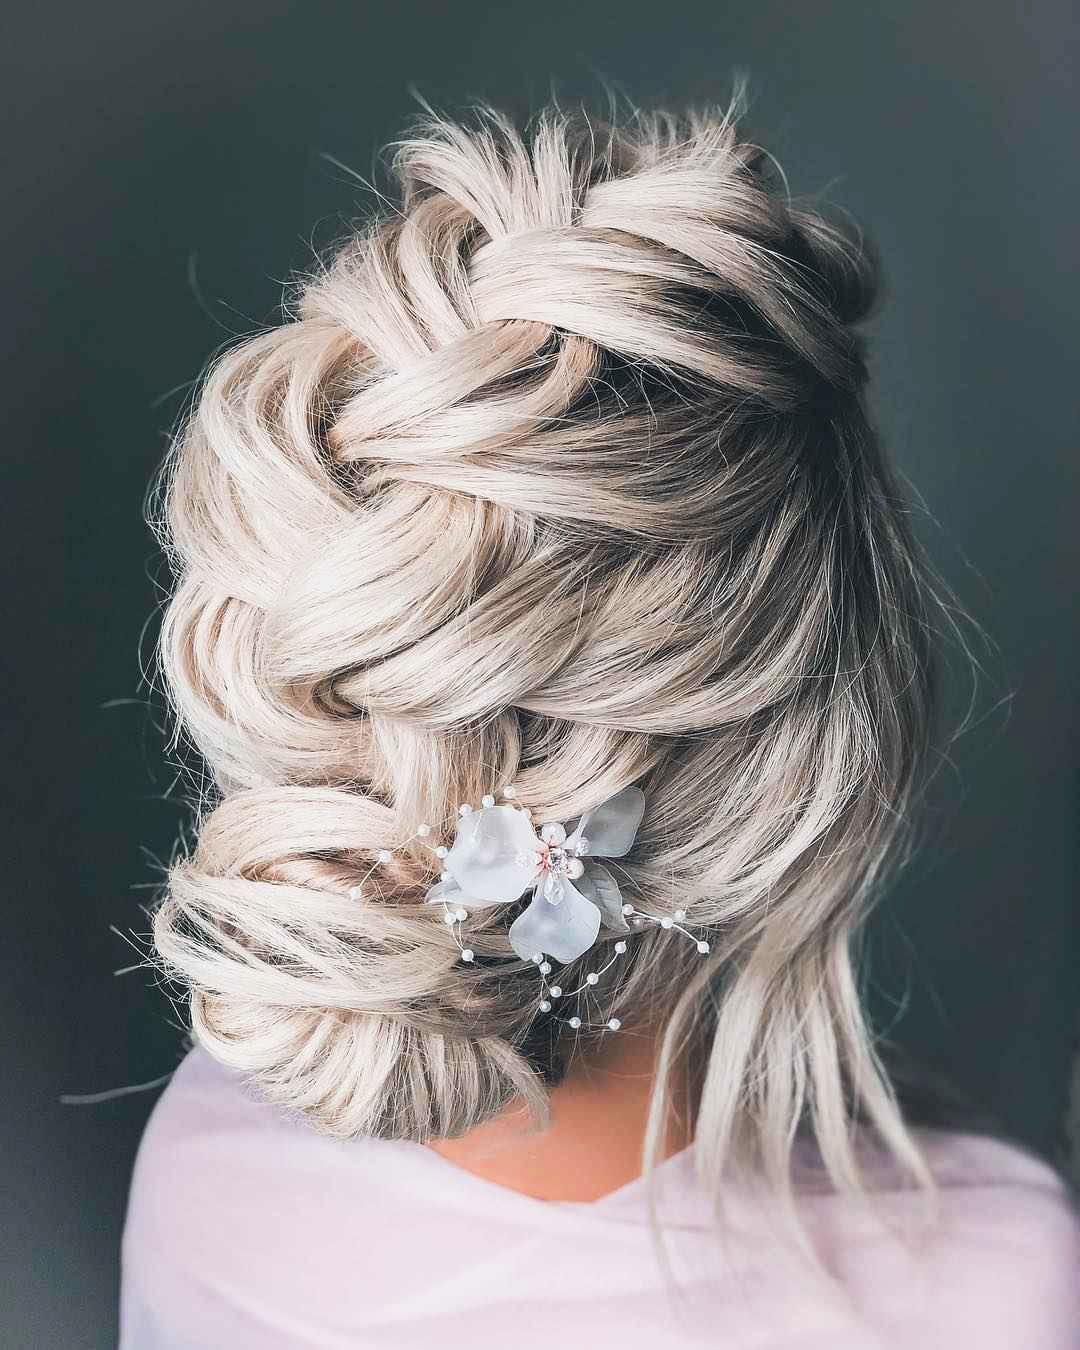 Hairstyles with small pins